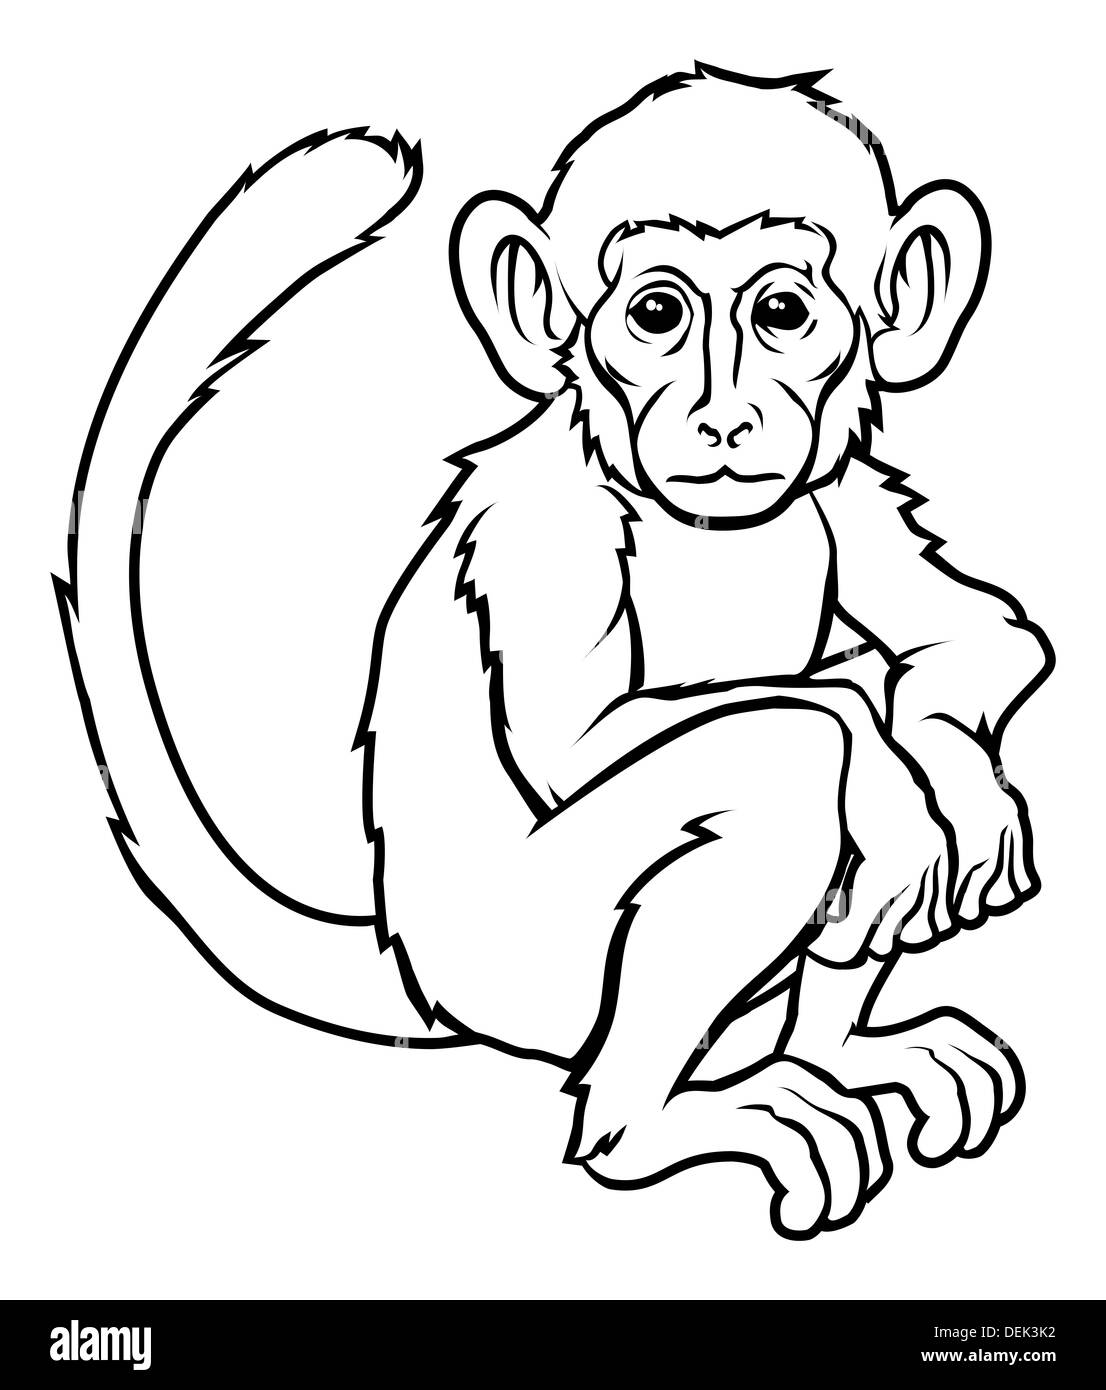 e1b0c2adb An illustration of a stylised monkey perhaps a monkey tattoo Stock ...